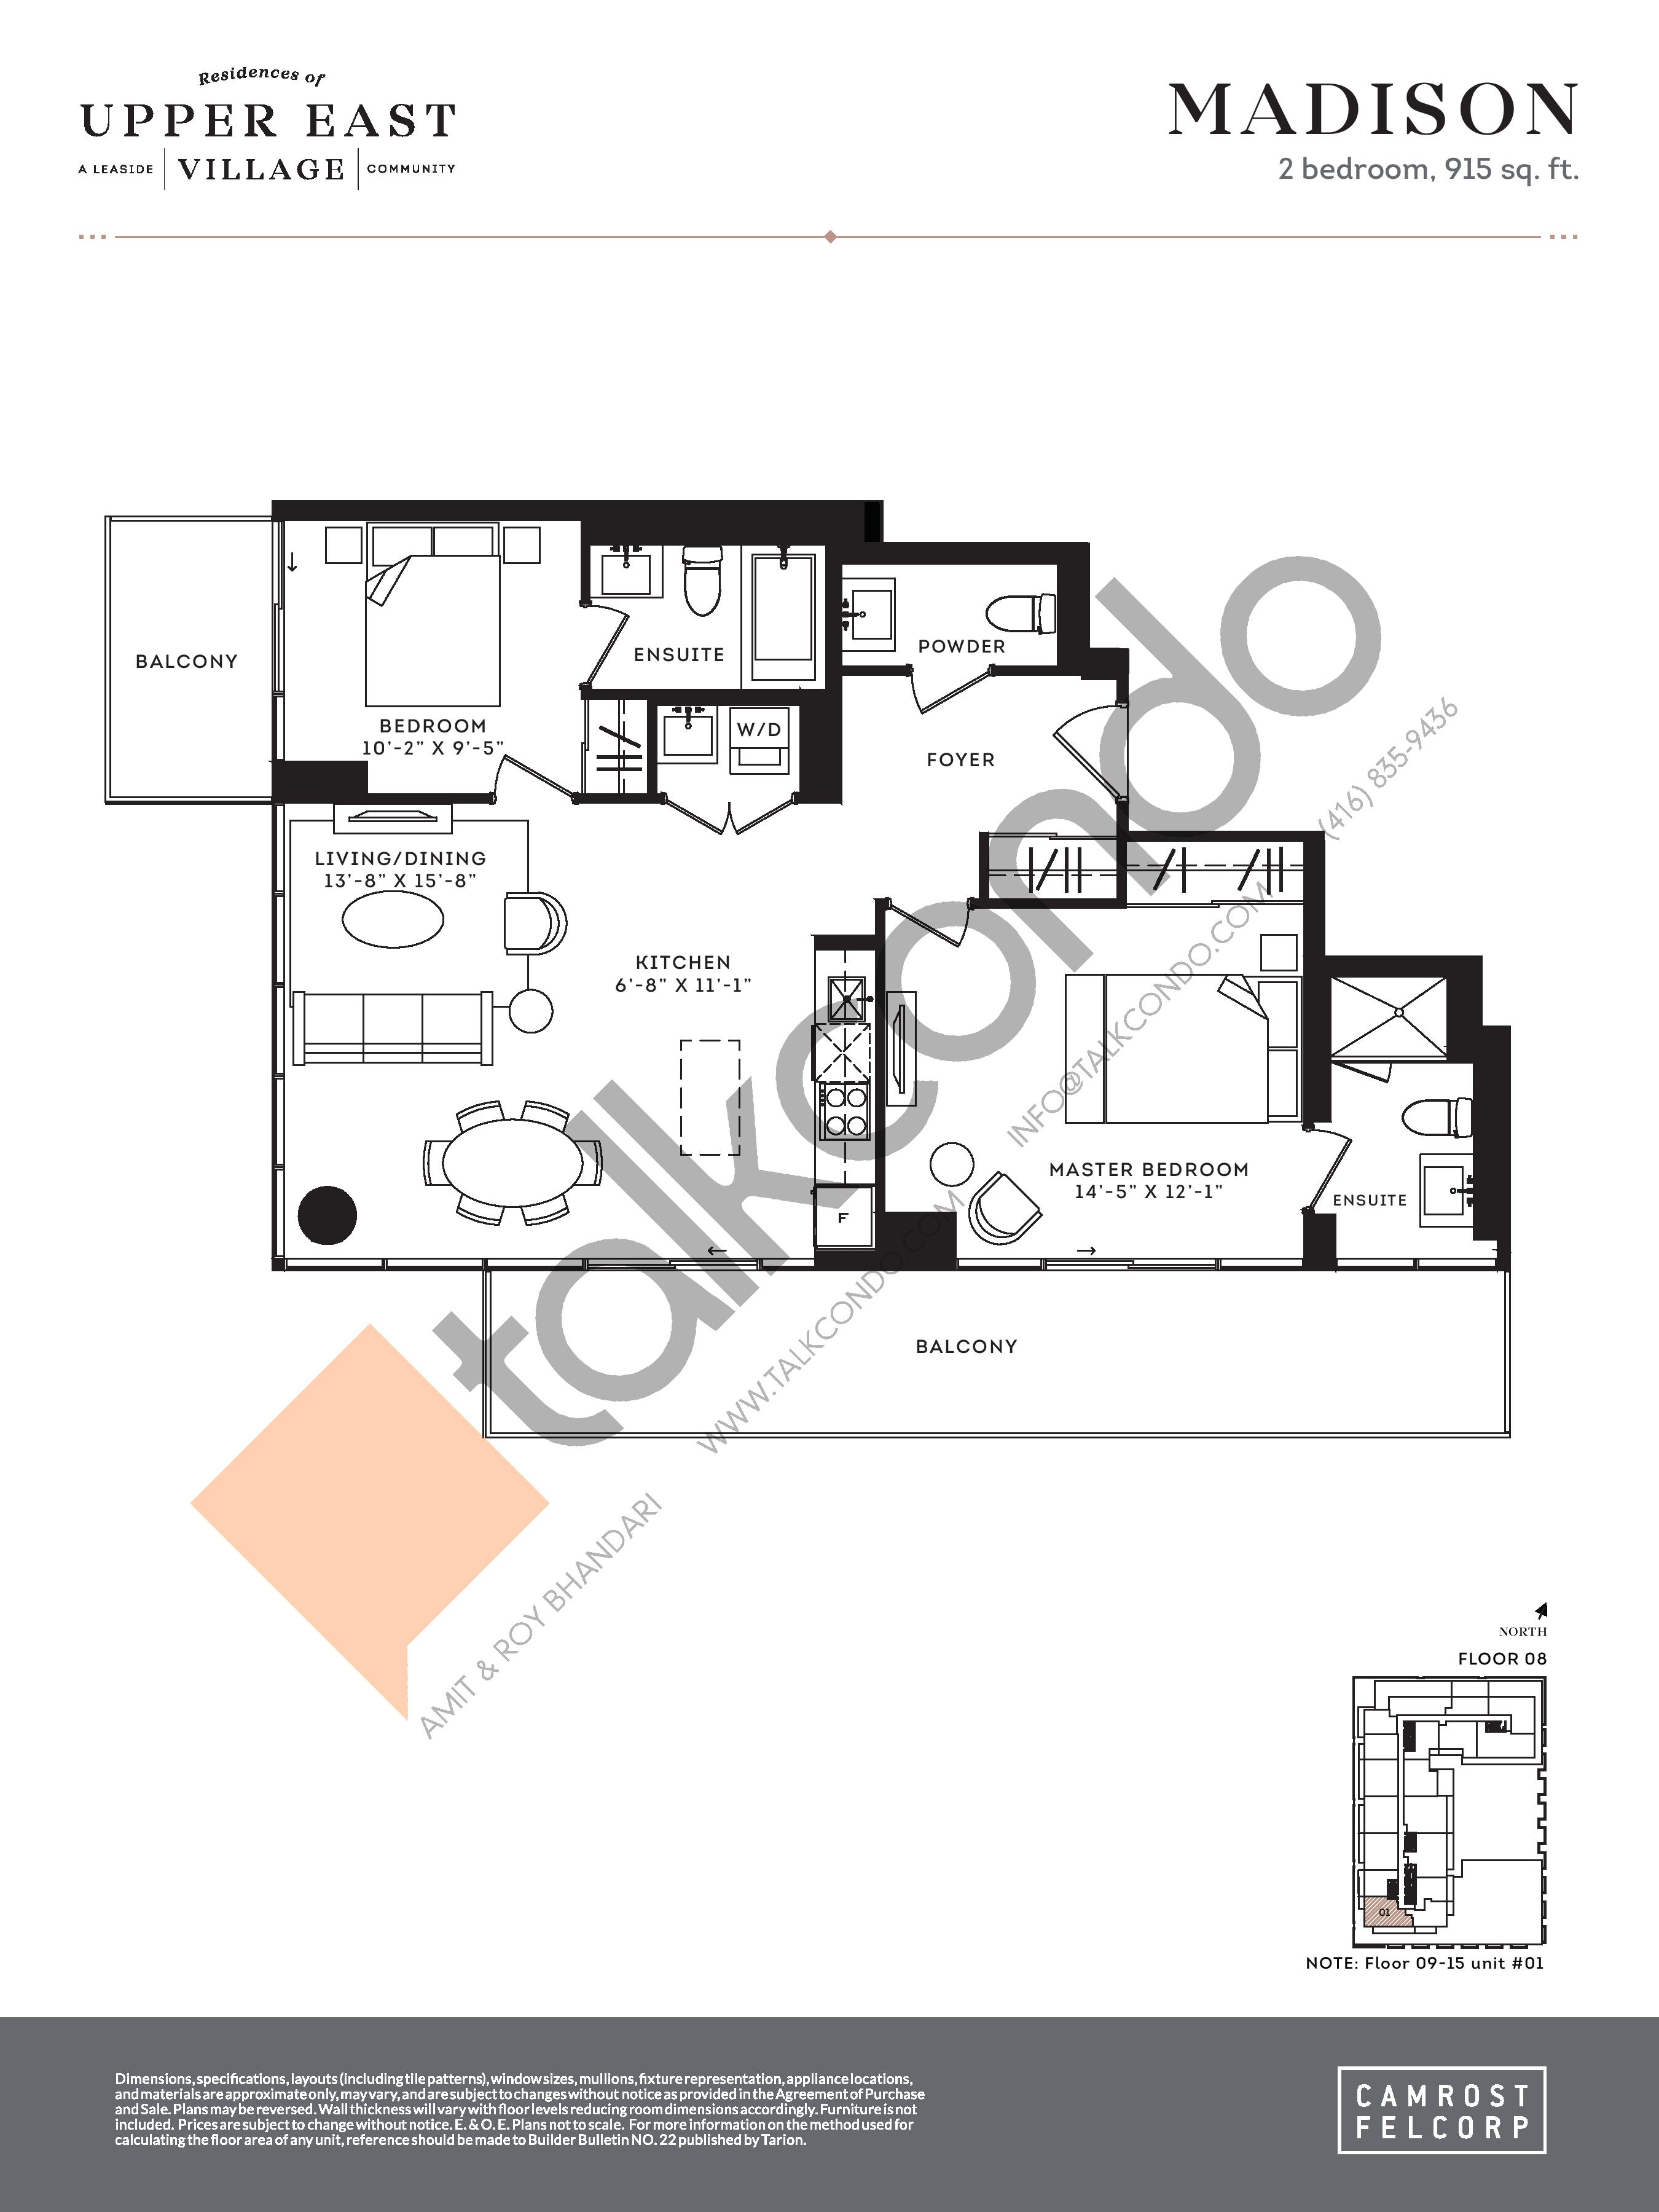 Madison (Tower Suites) Floor Plan at Upper East Village Condos - 980 sq.ft